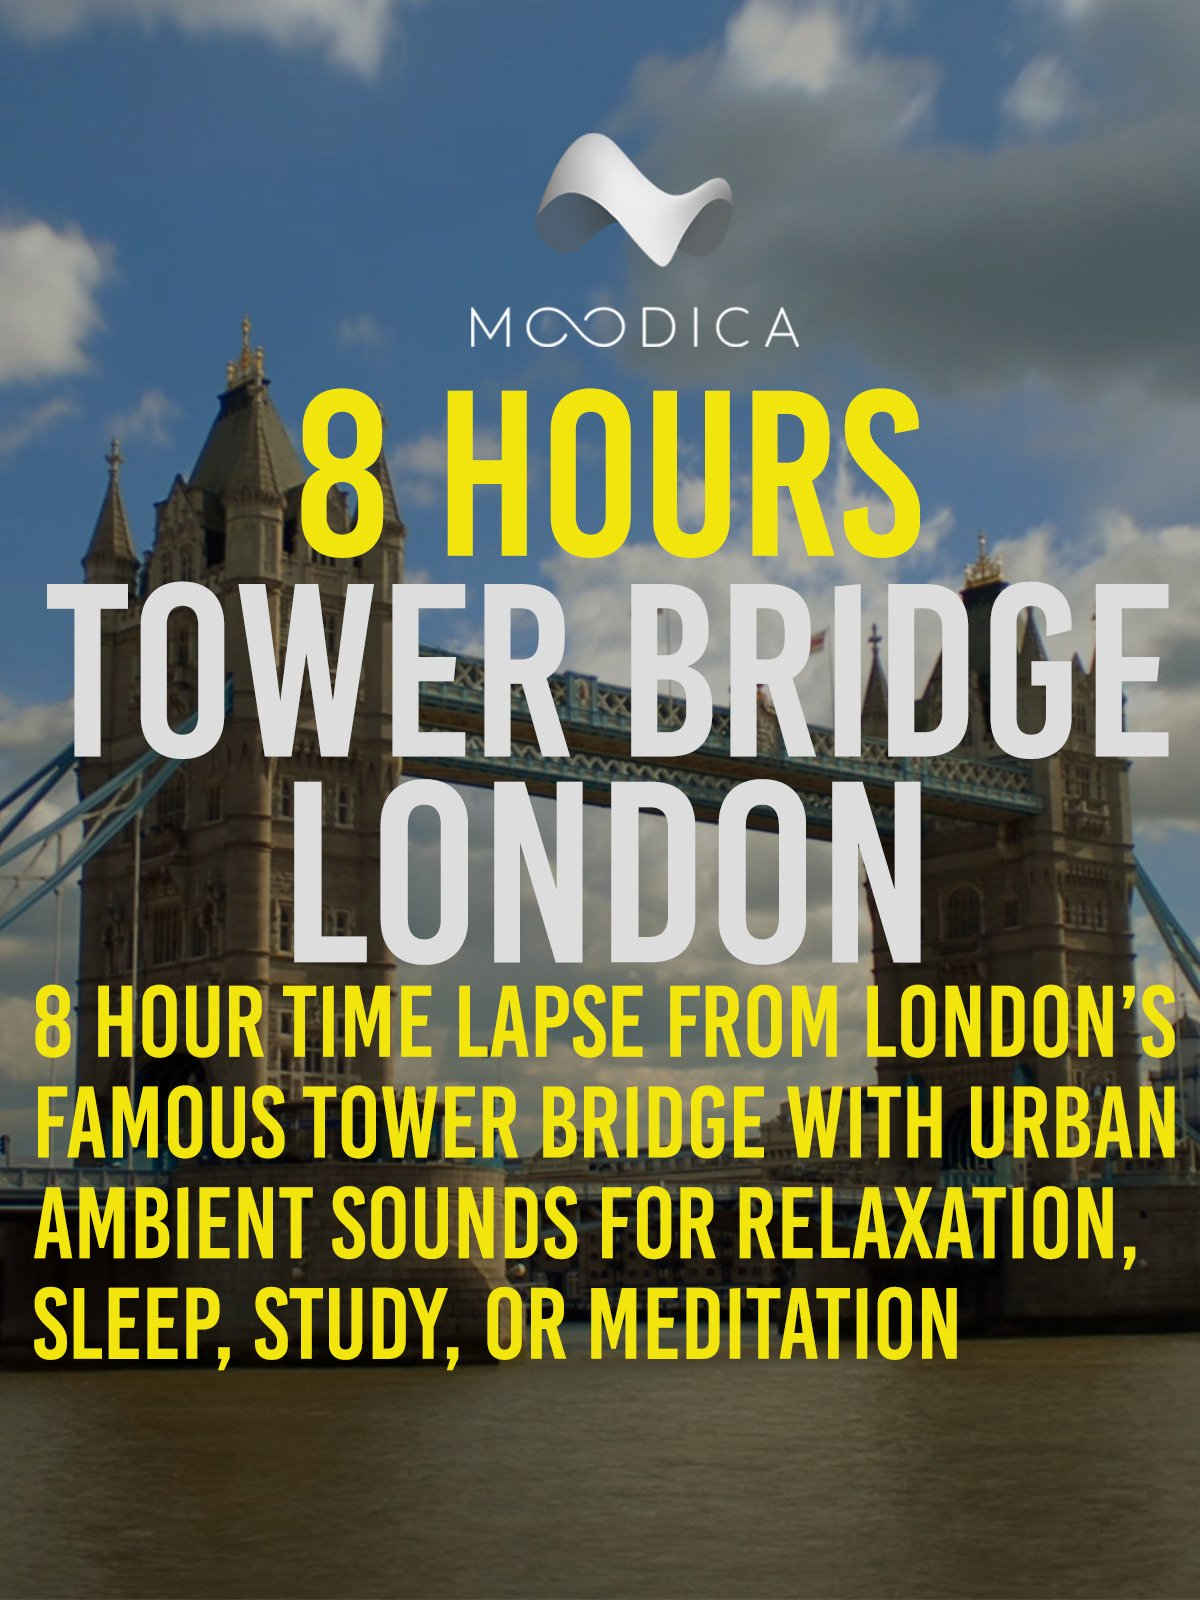 8 Hours: Tower Bridge London: 8 Hour Time Lapse From London's Famous Tower Bridge With Urban Ambient Sounds For Relaxation, Sleep, Study, or Meditation